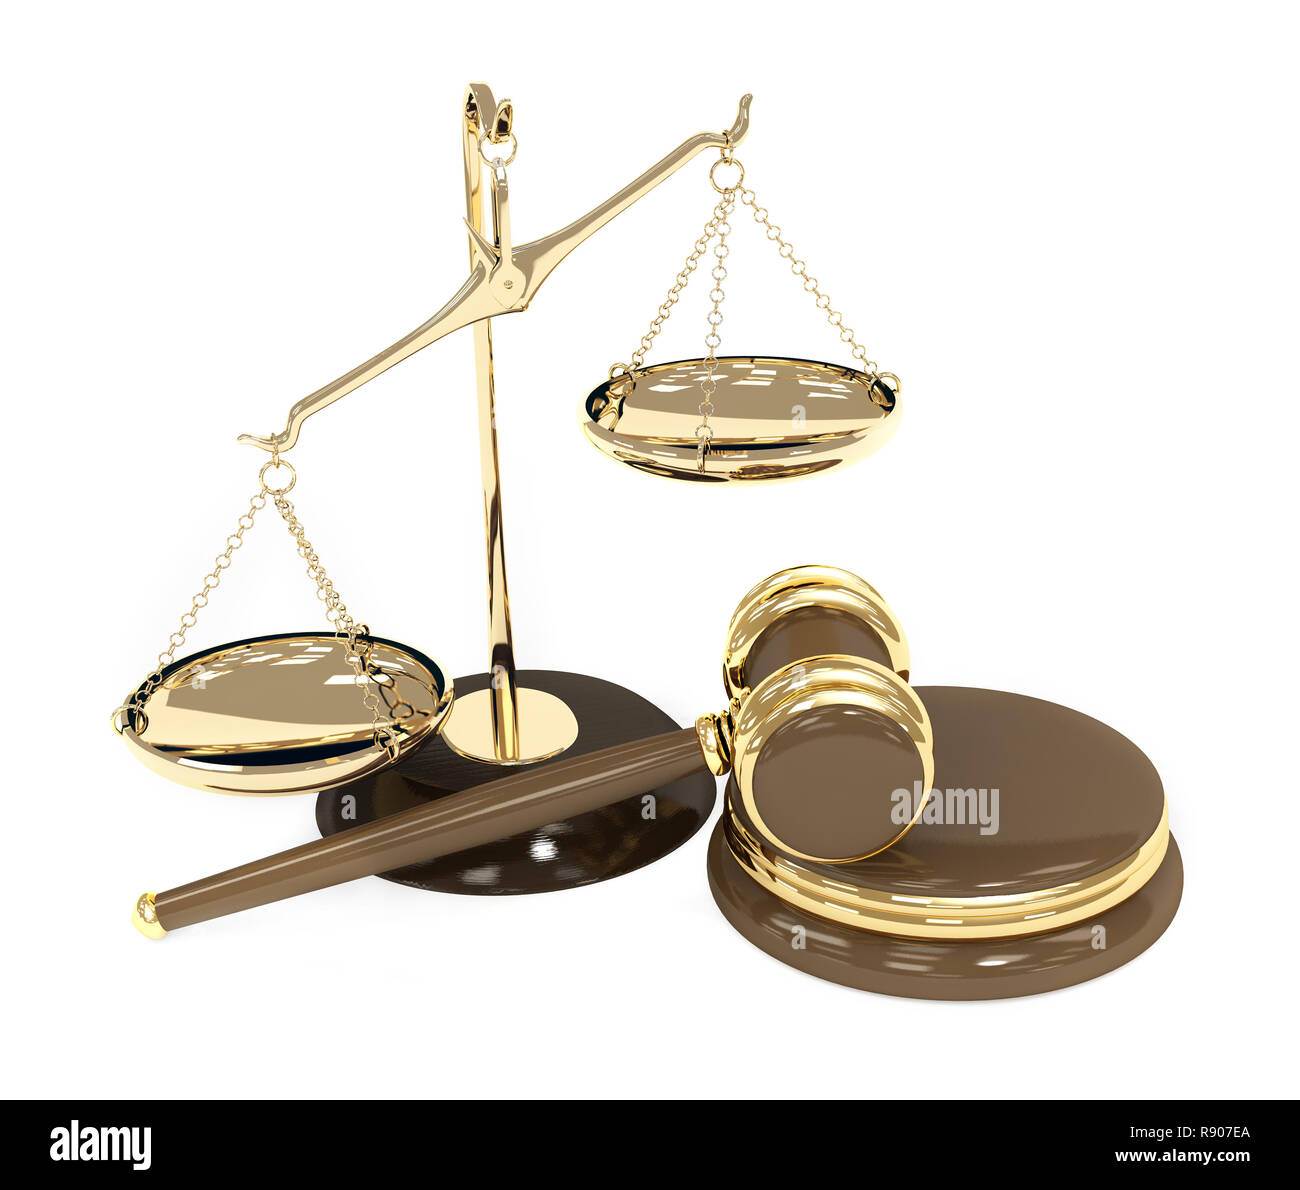 Gold scales and auction hammer. Objects over white - Stock Image